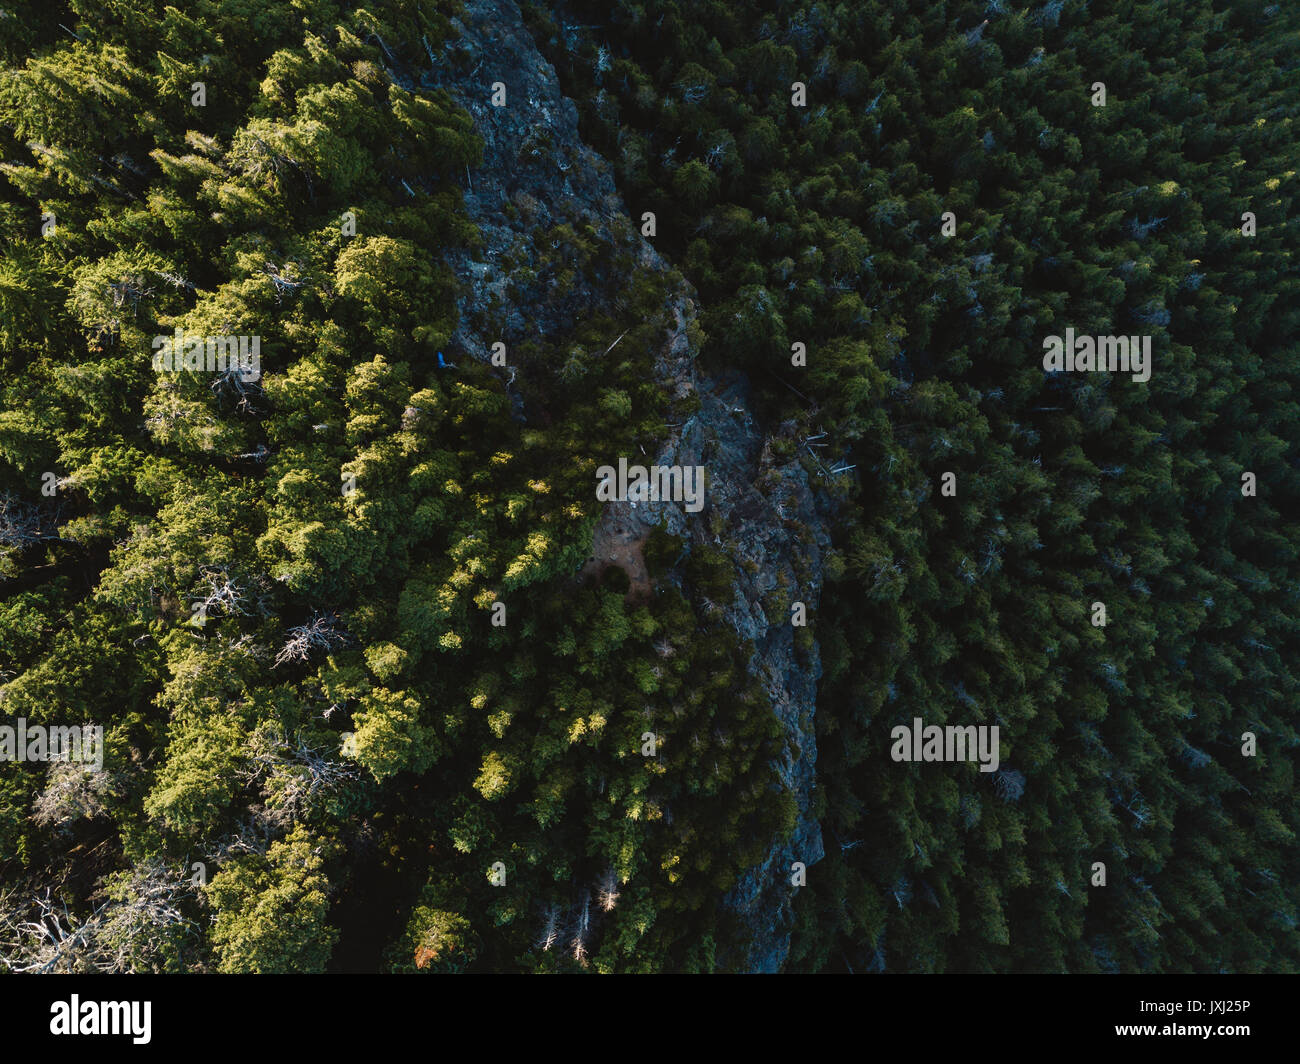 Top view from drone of green trees - Stock Image